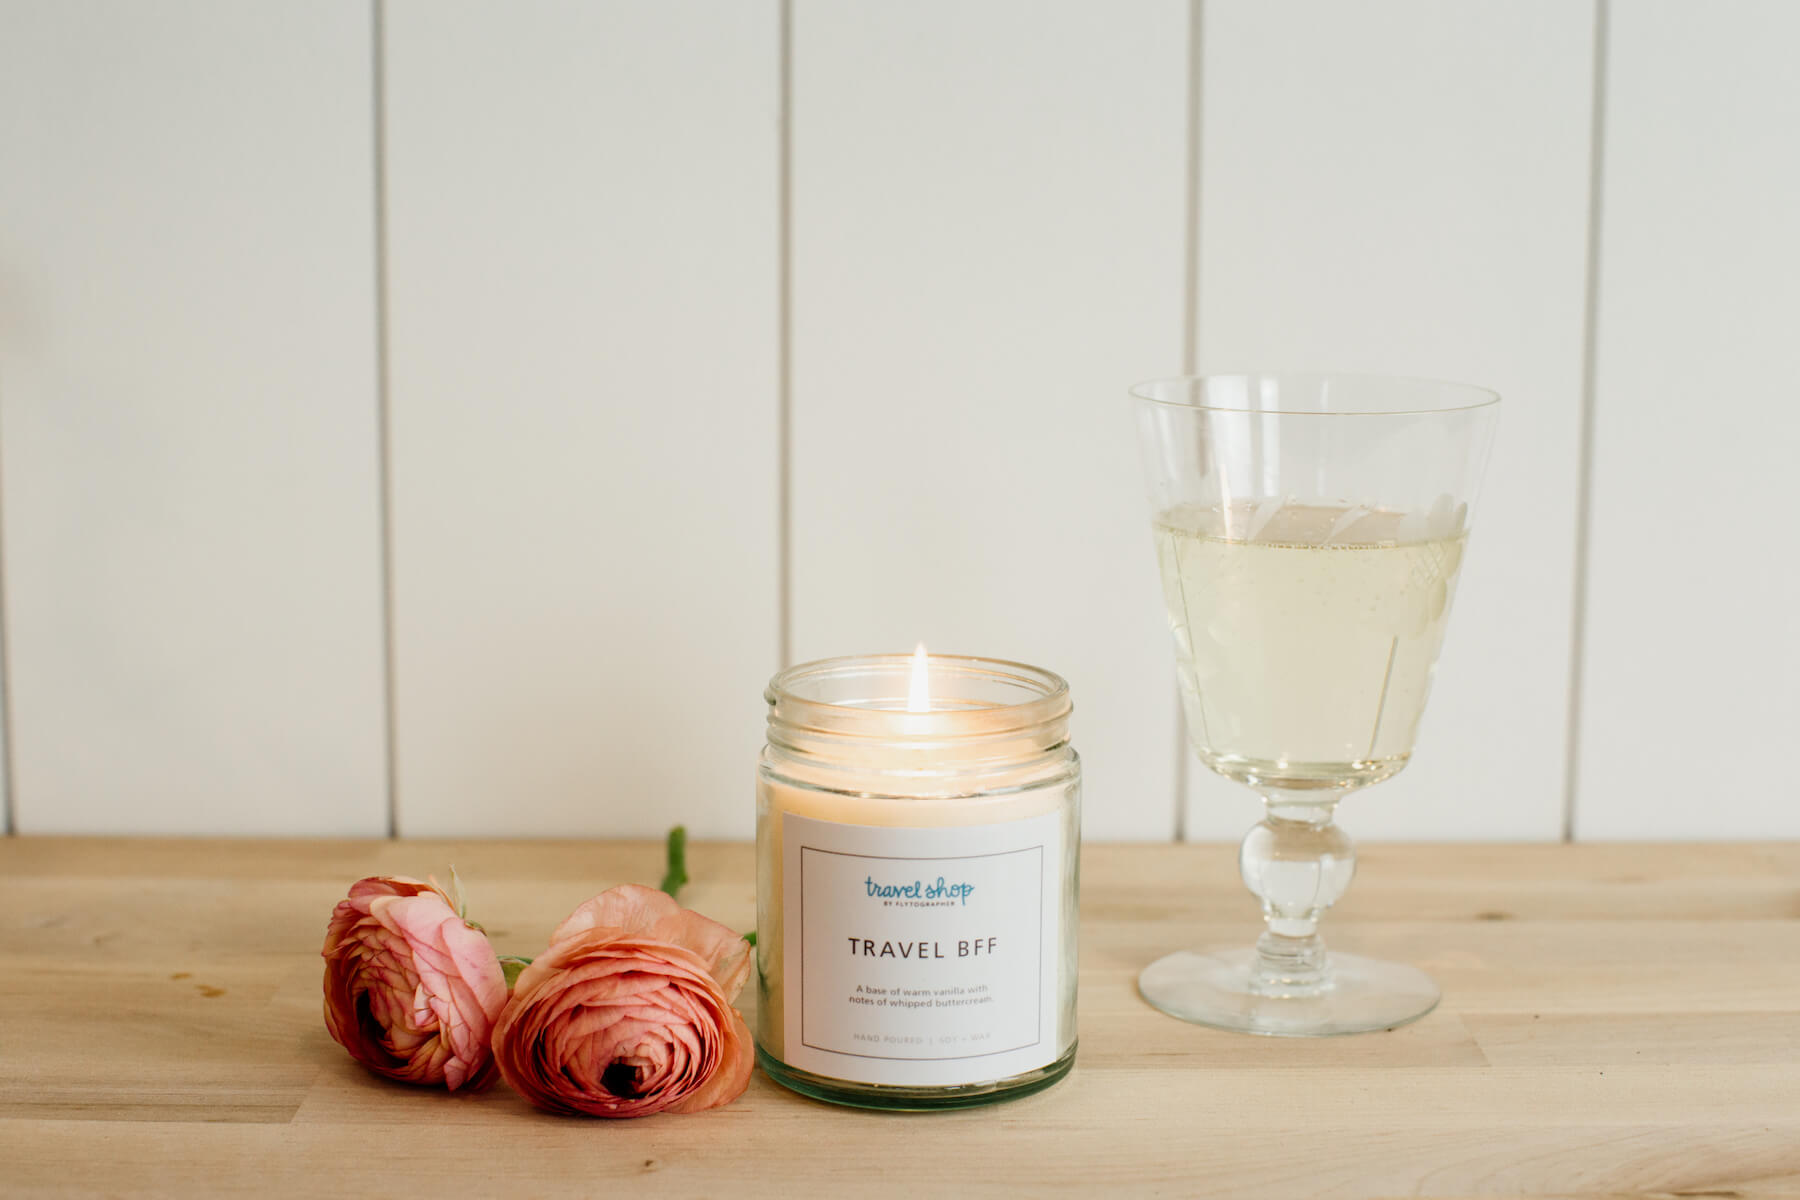 Shop gifts for travellers at the Travel Shop like this Travel-inspired candle, Travel BFF!